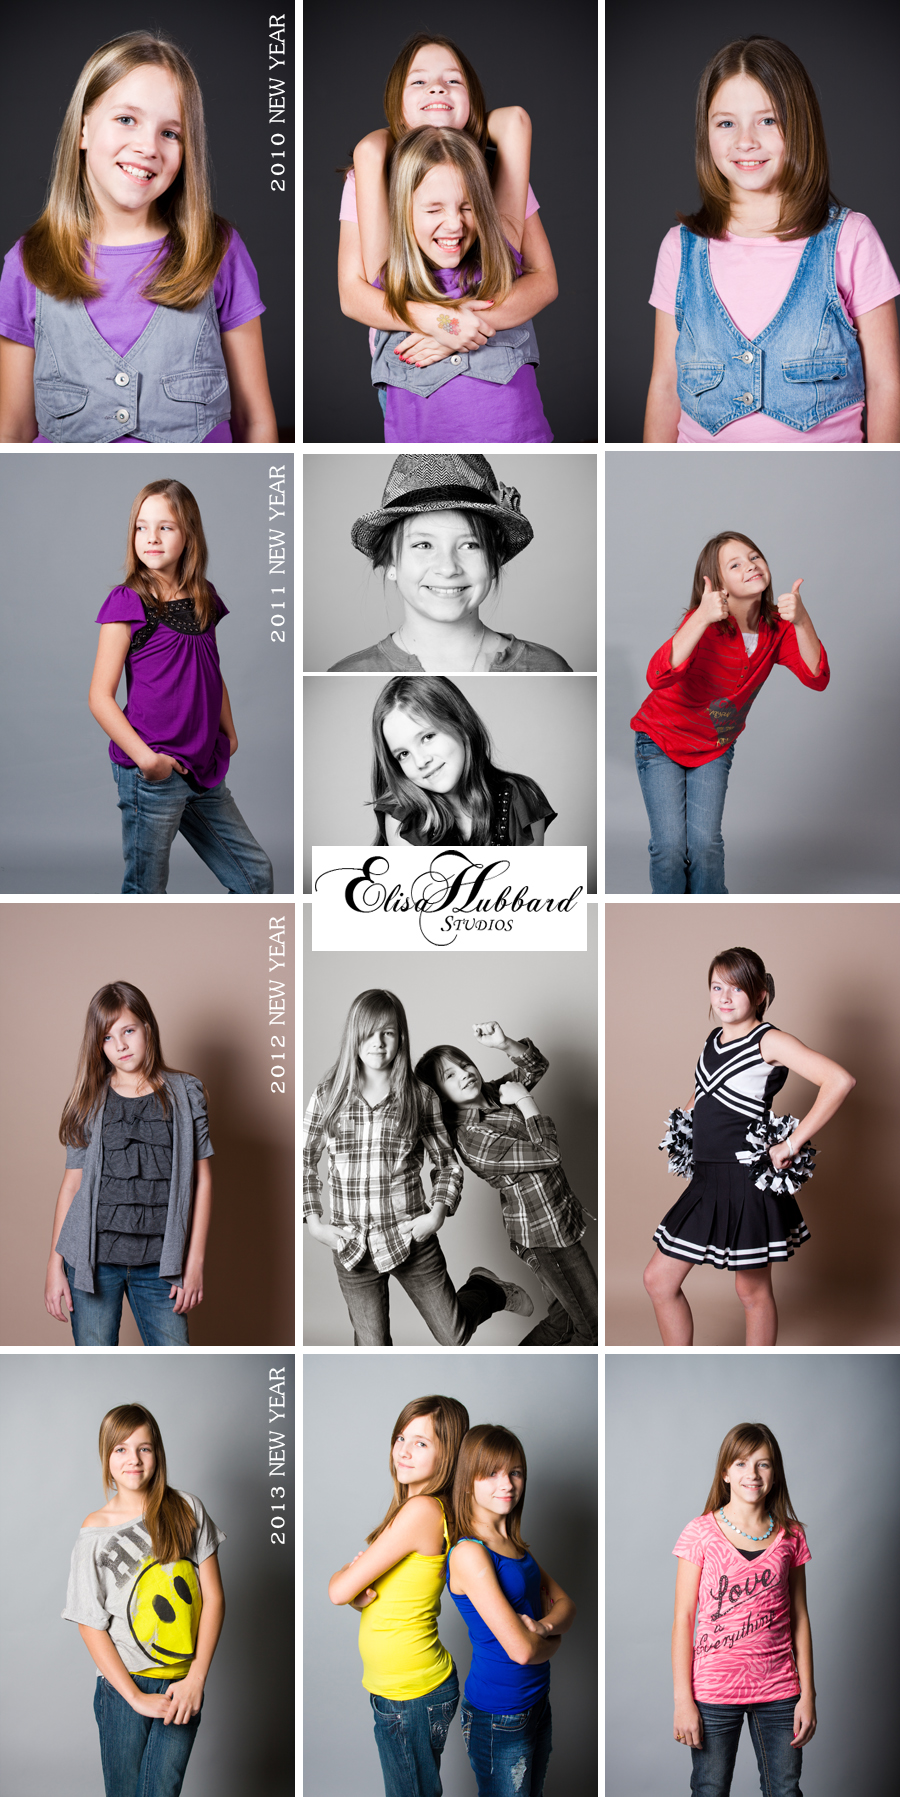 Elisa Hubbard Studios, Studio Photography, Teenager, Portrait Photography, Twins, Girls